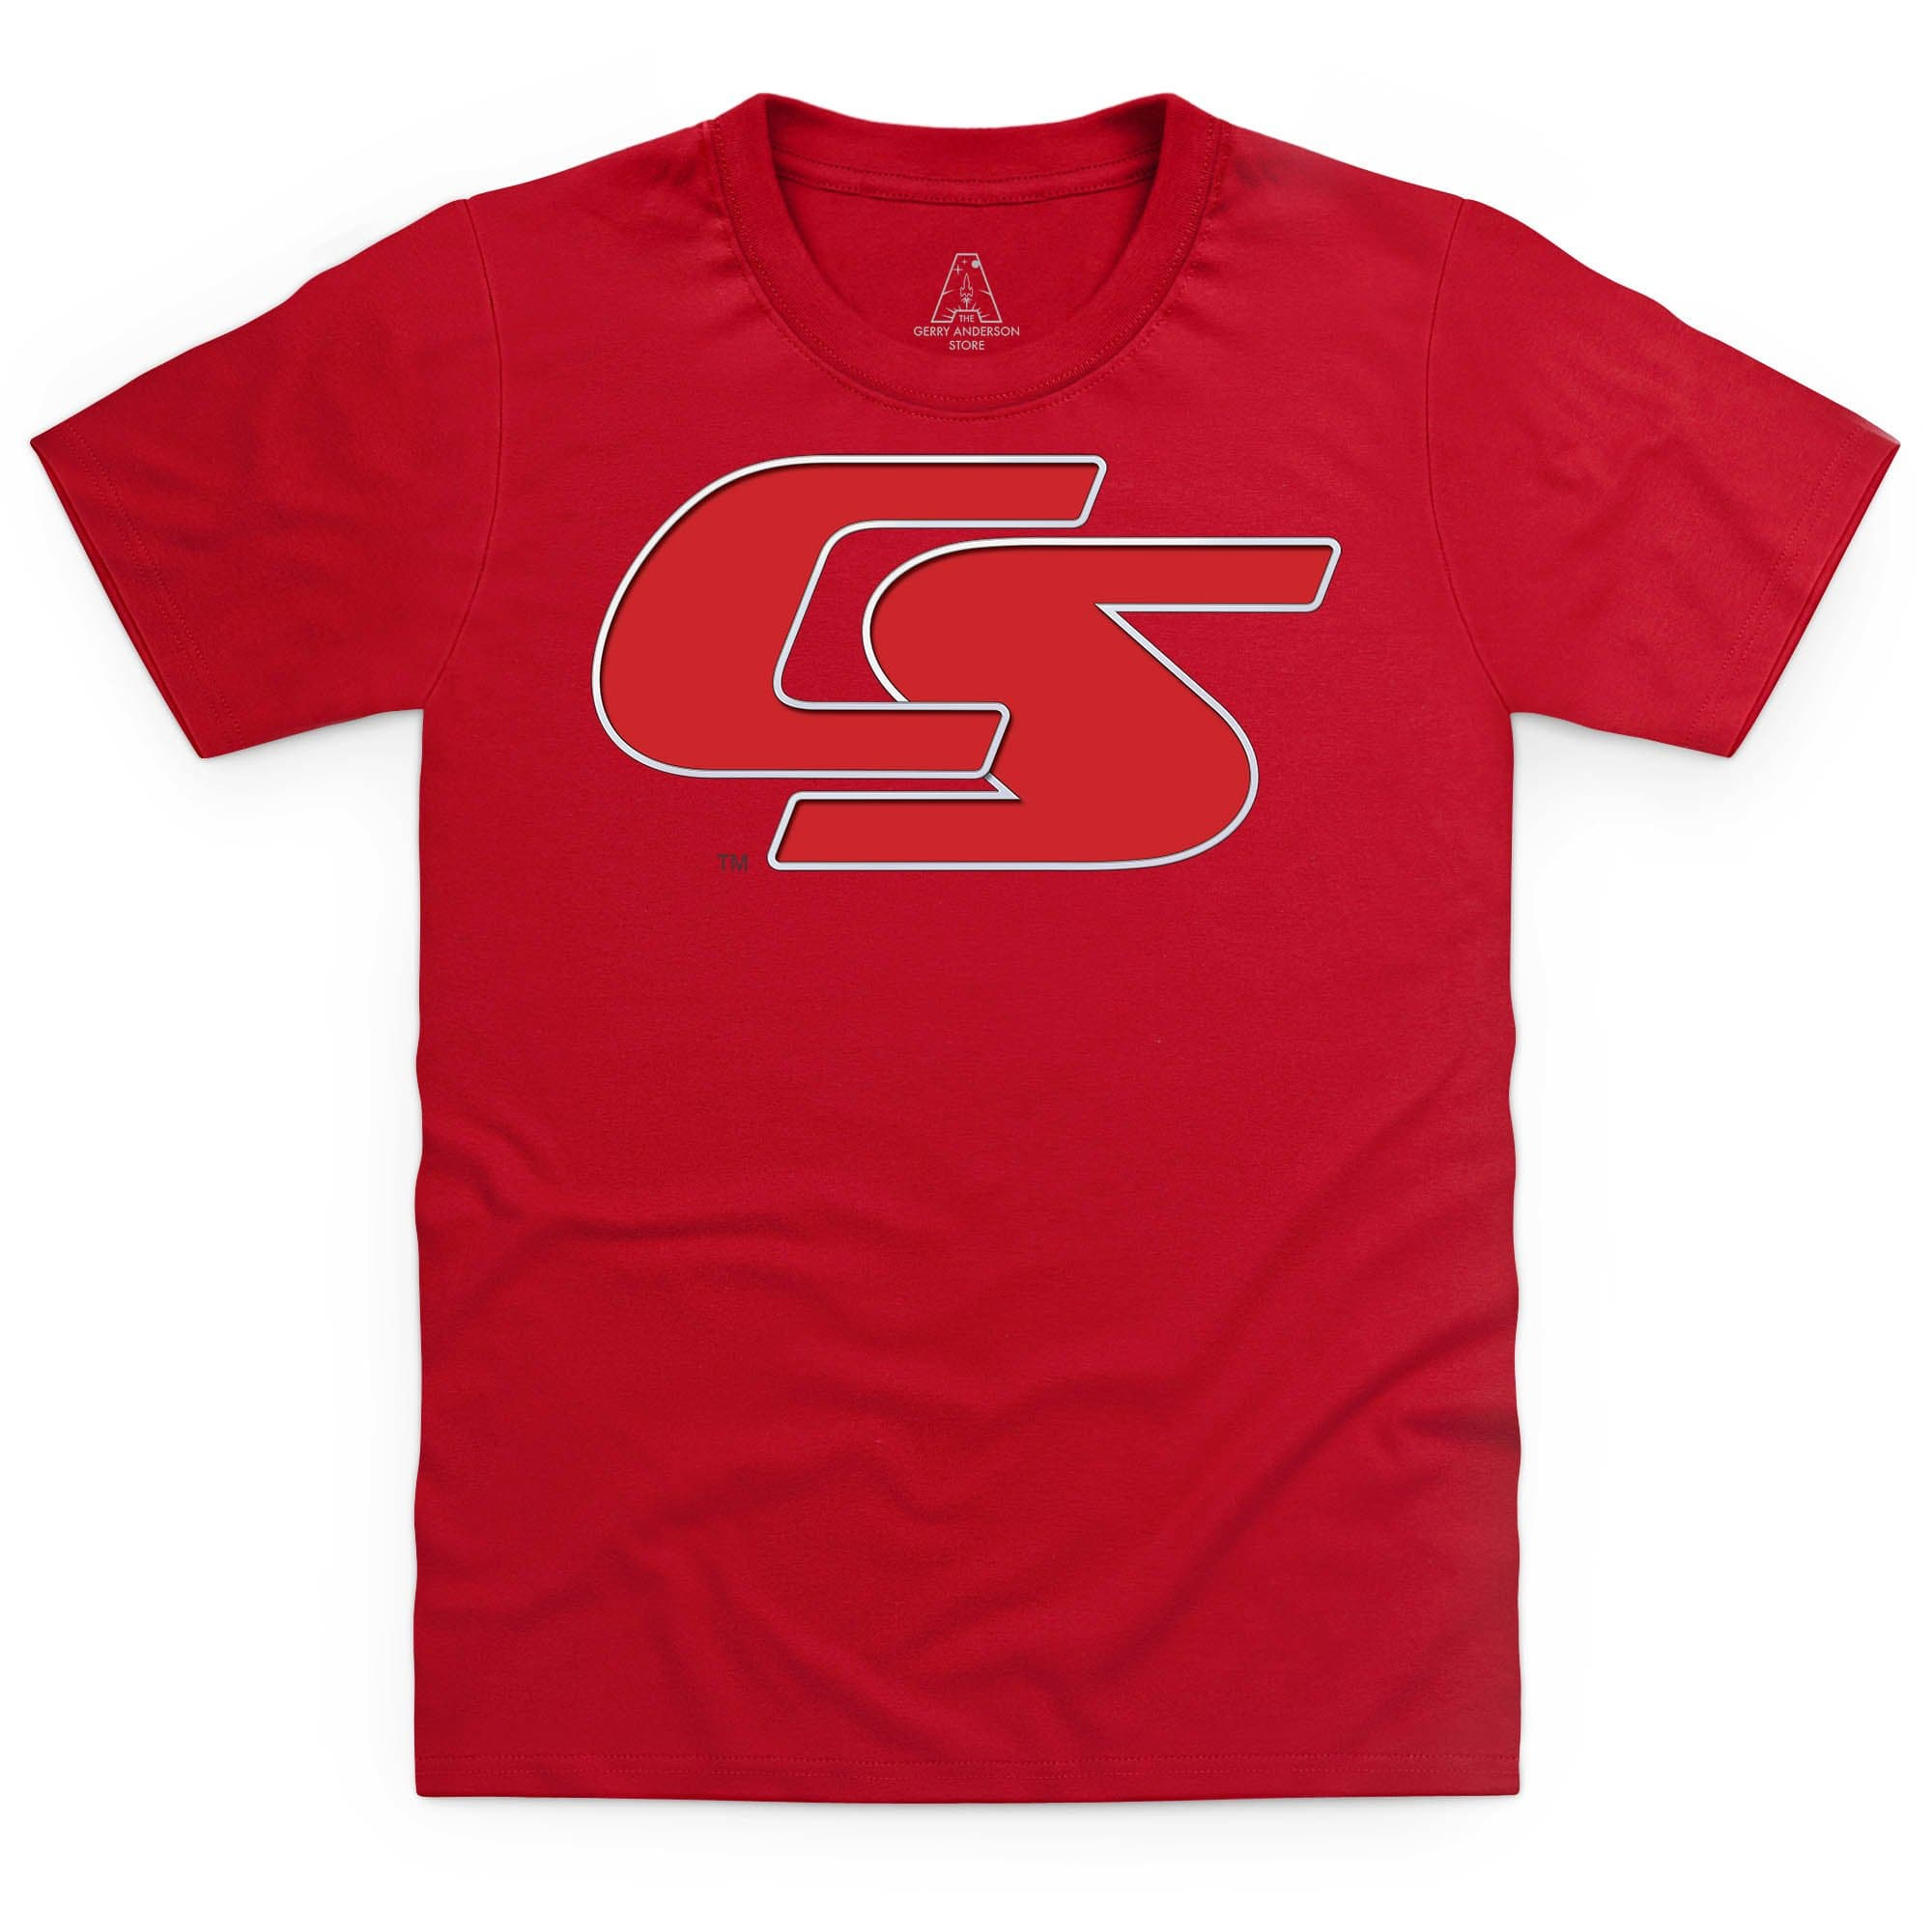 New Captain Scarlet Logo Kid's T-Shirt [Official & Exclusive] - The Gerry Anderson Store